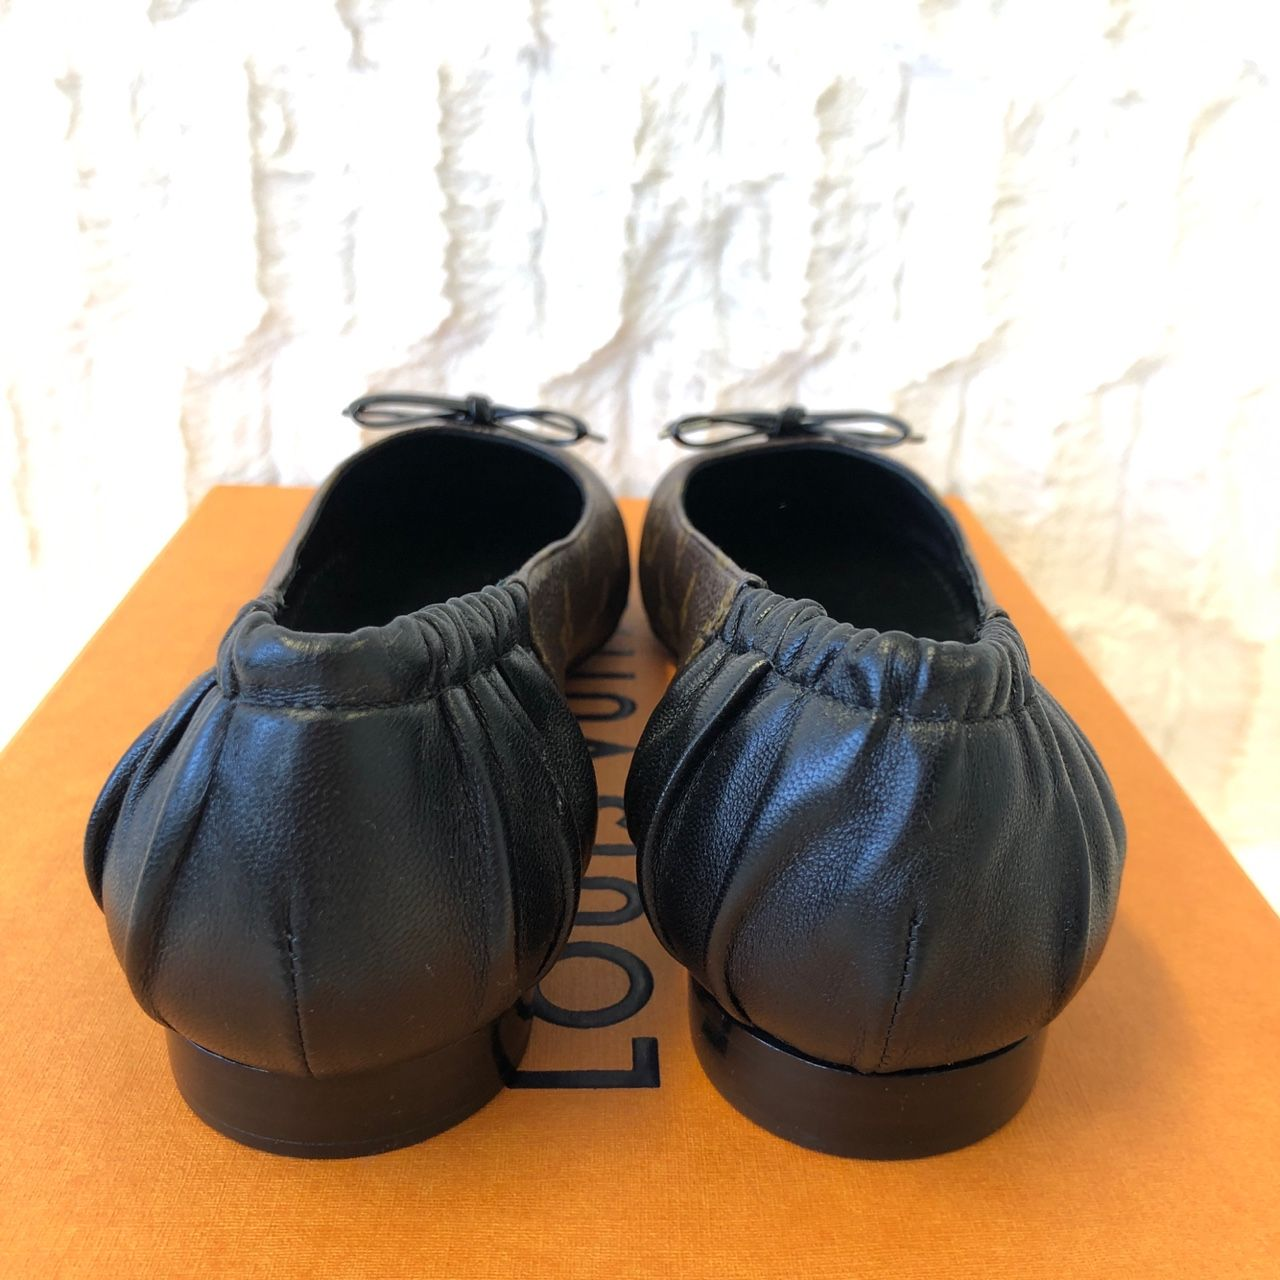 Louis Vuitton Joy Ballerina Schwarz 1A87XU